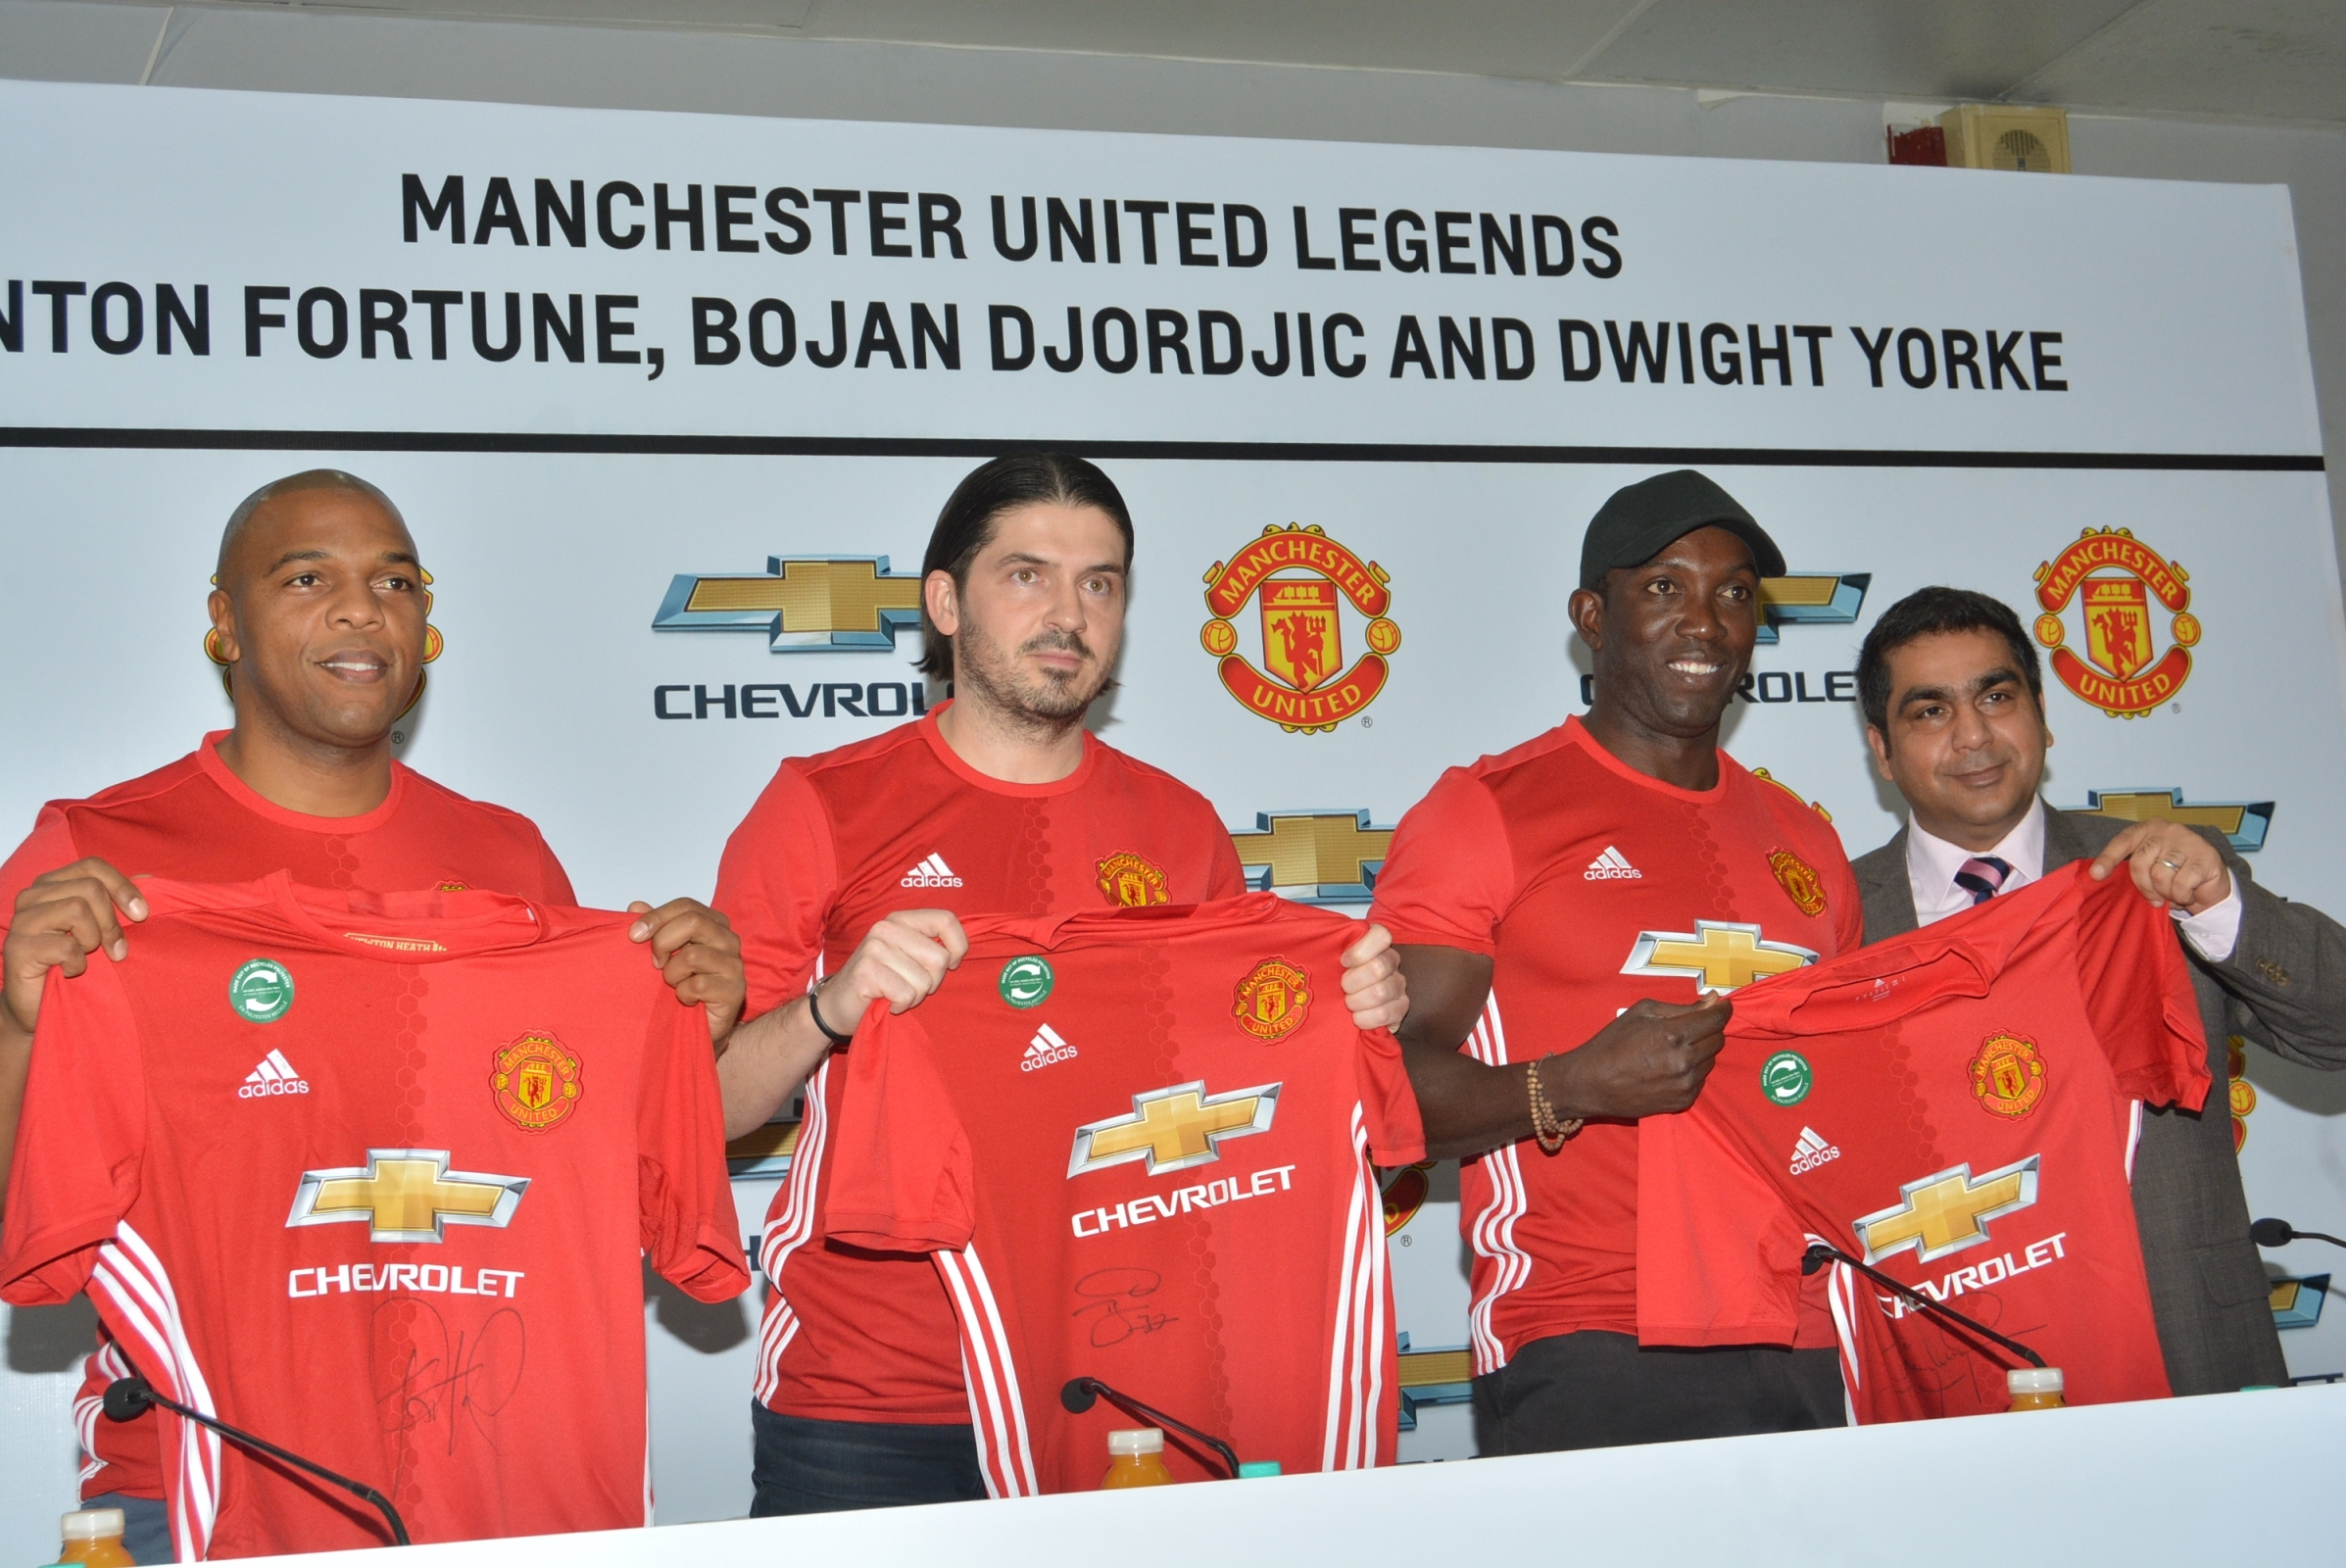 Chevrolet hosts Manchester United fan party ILOVEUNITED at